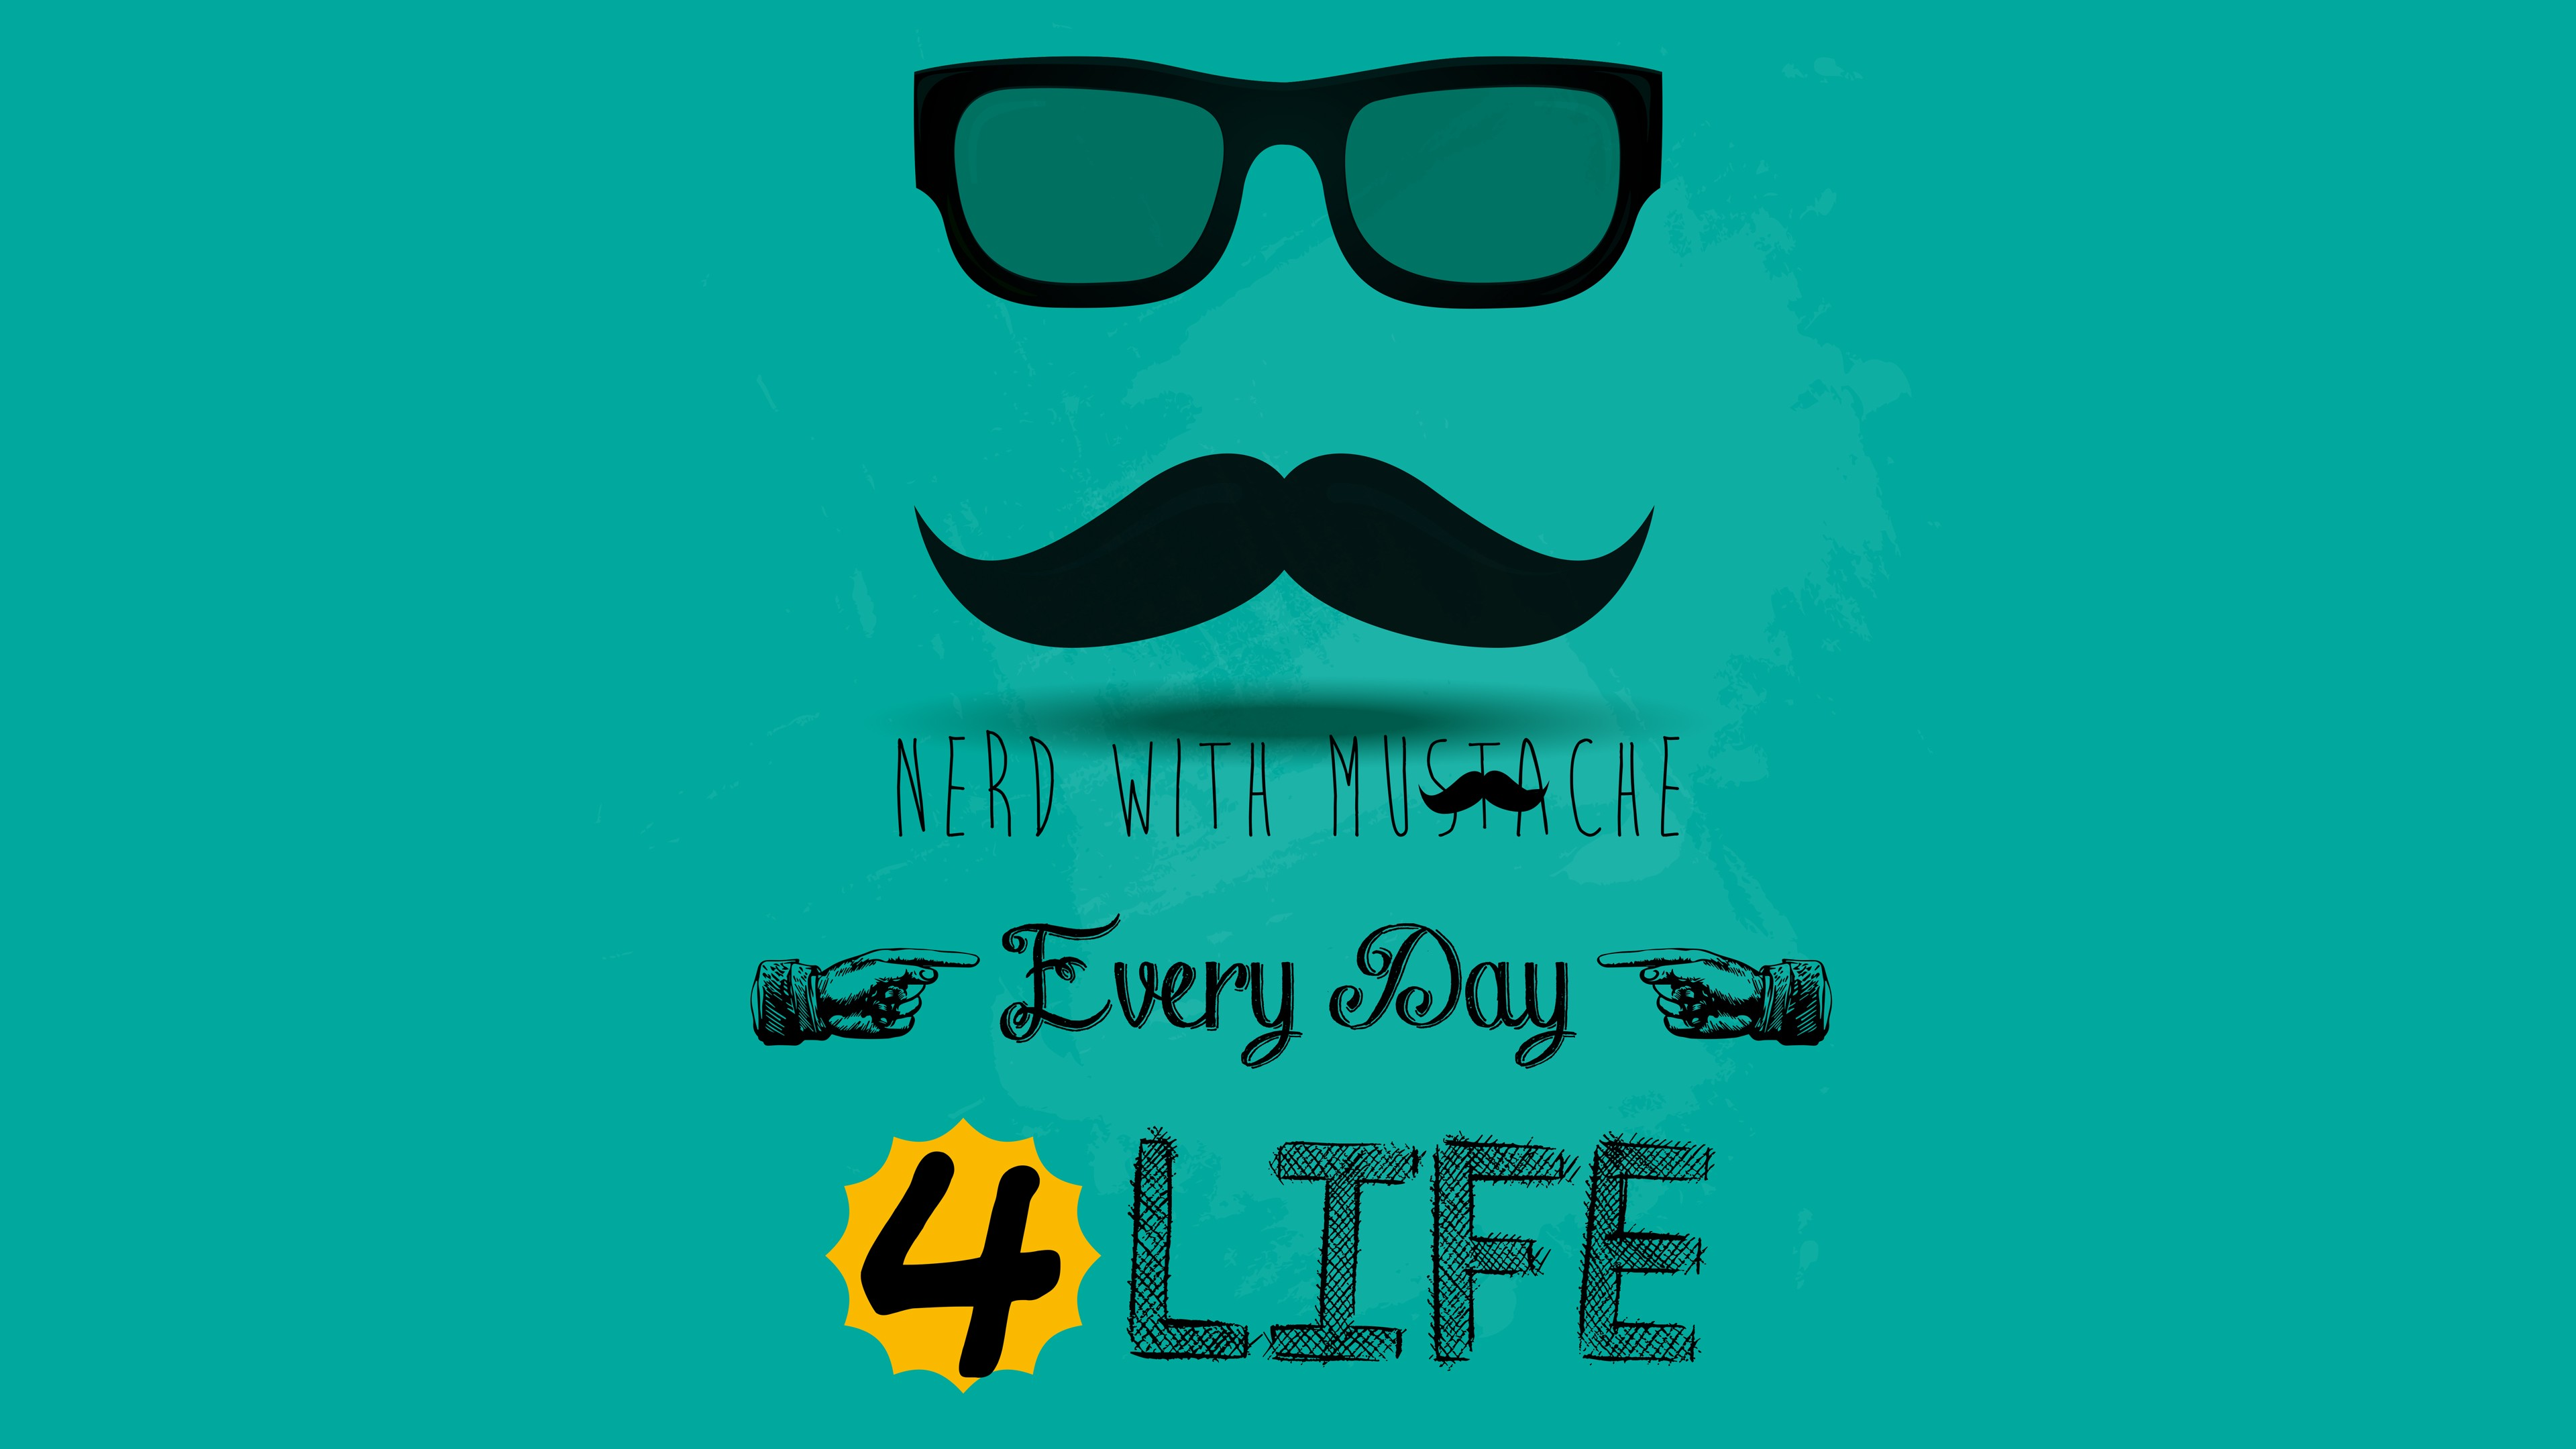 nerd with mustache hd typography 4k wallpapers images